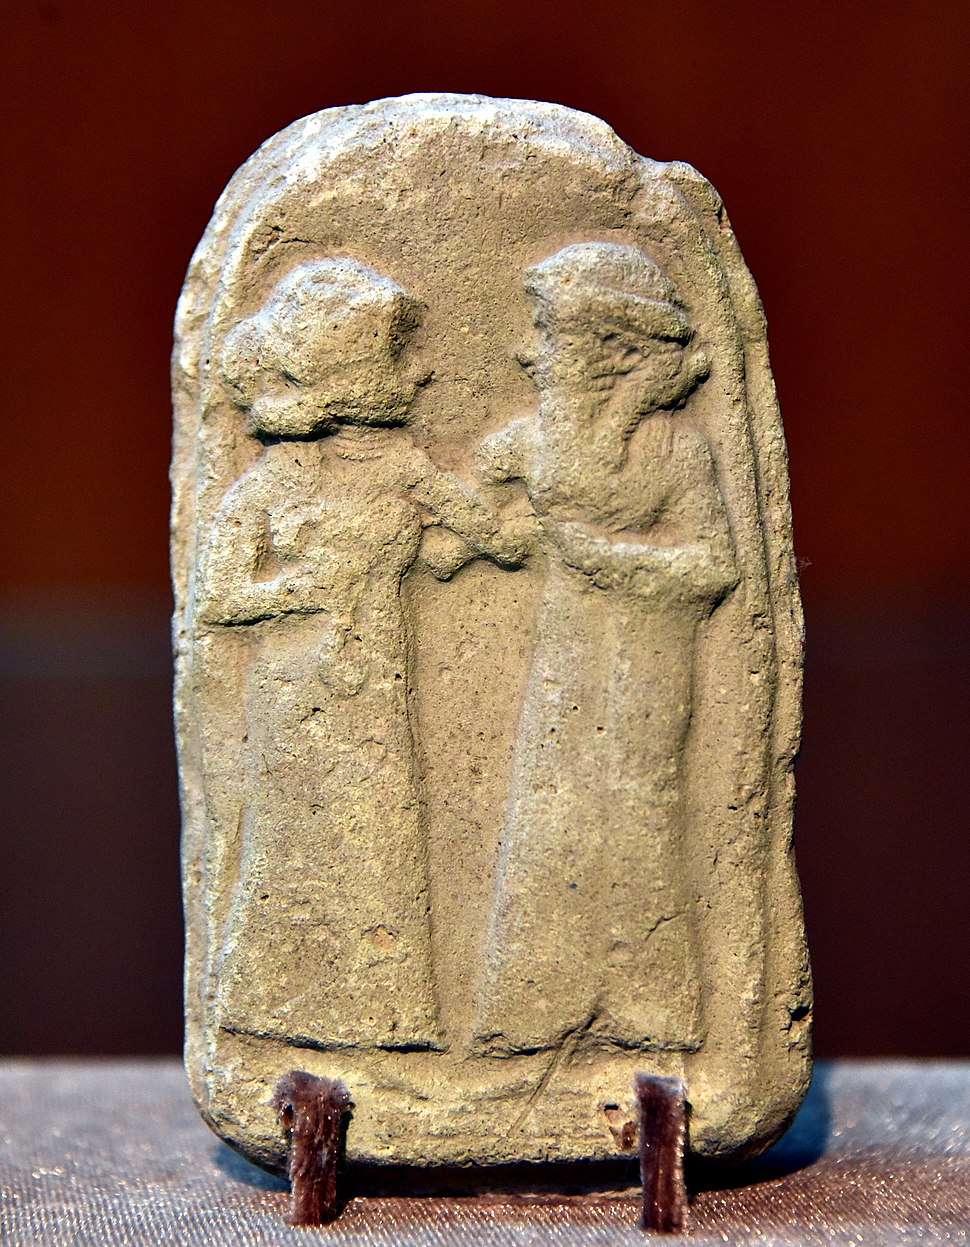 Man and woman, Old-Babylonian fired clay plaque from Southern Mesopotamia, Iraq